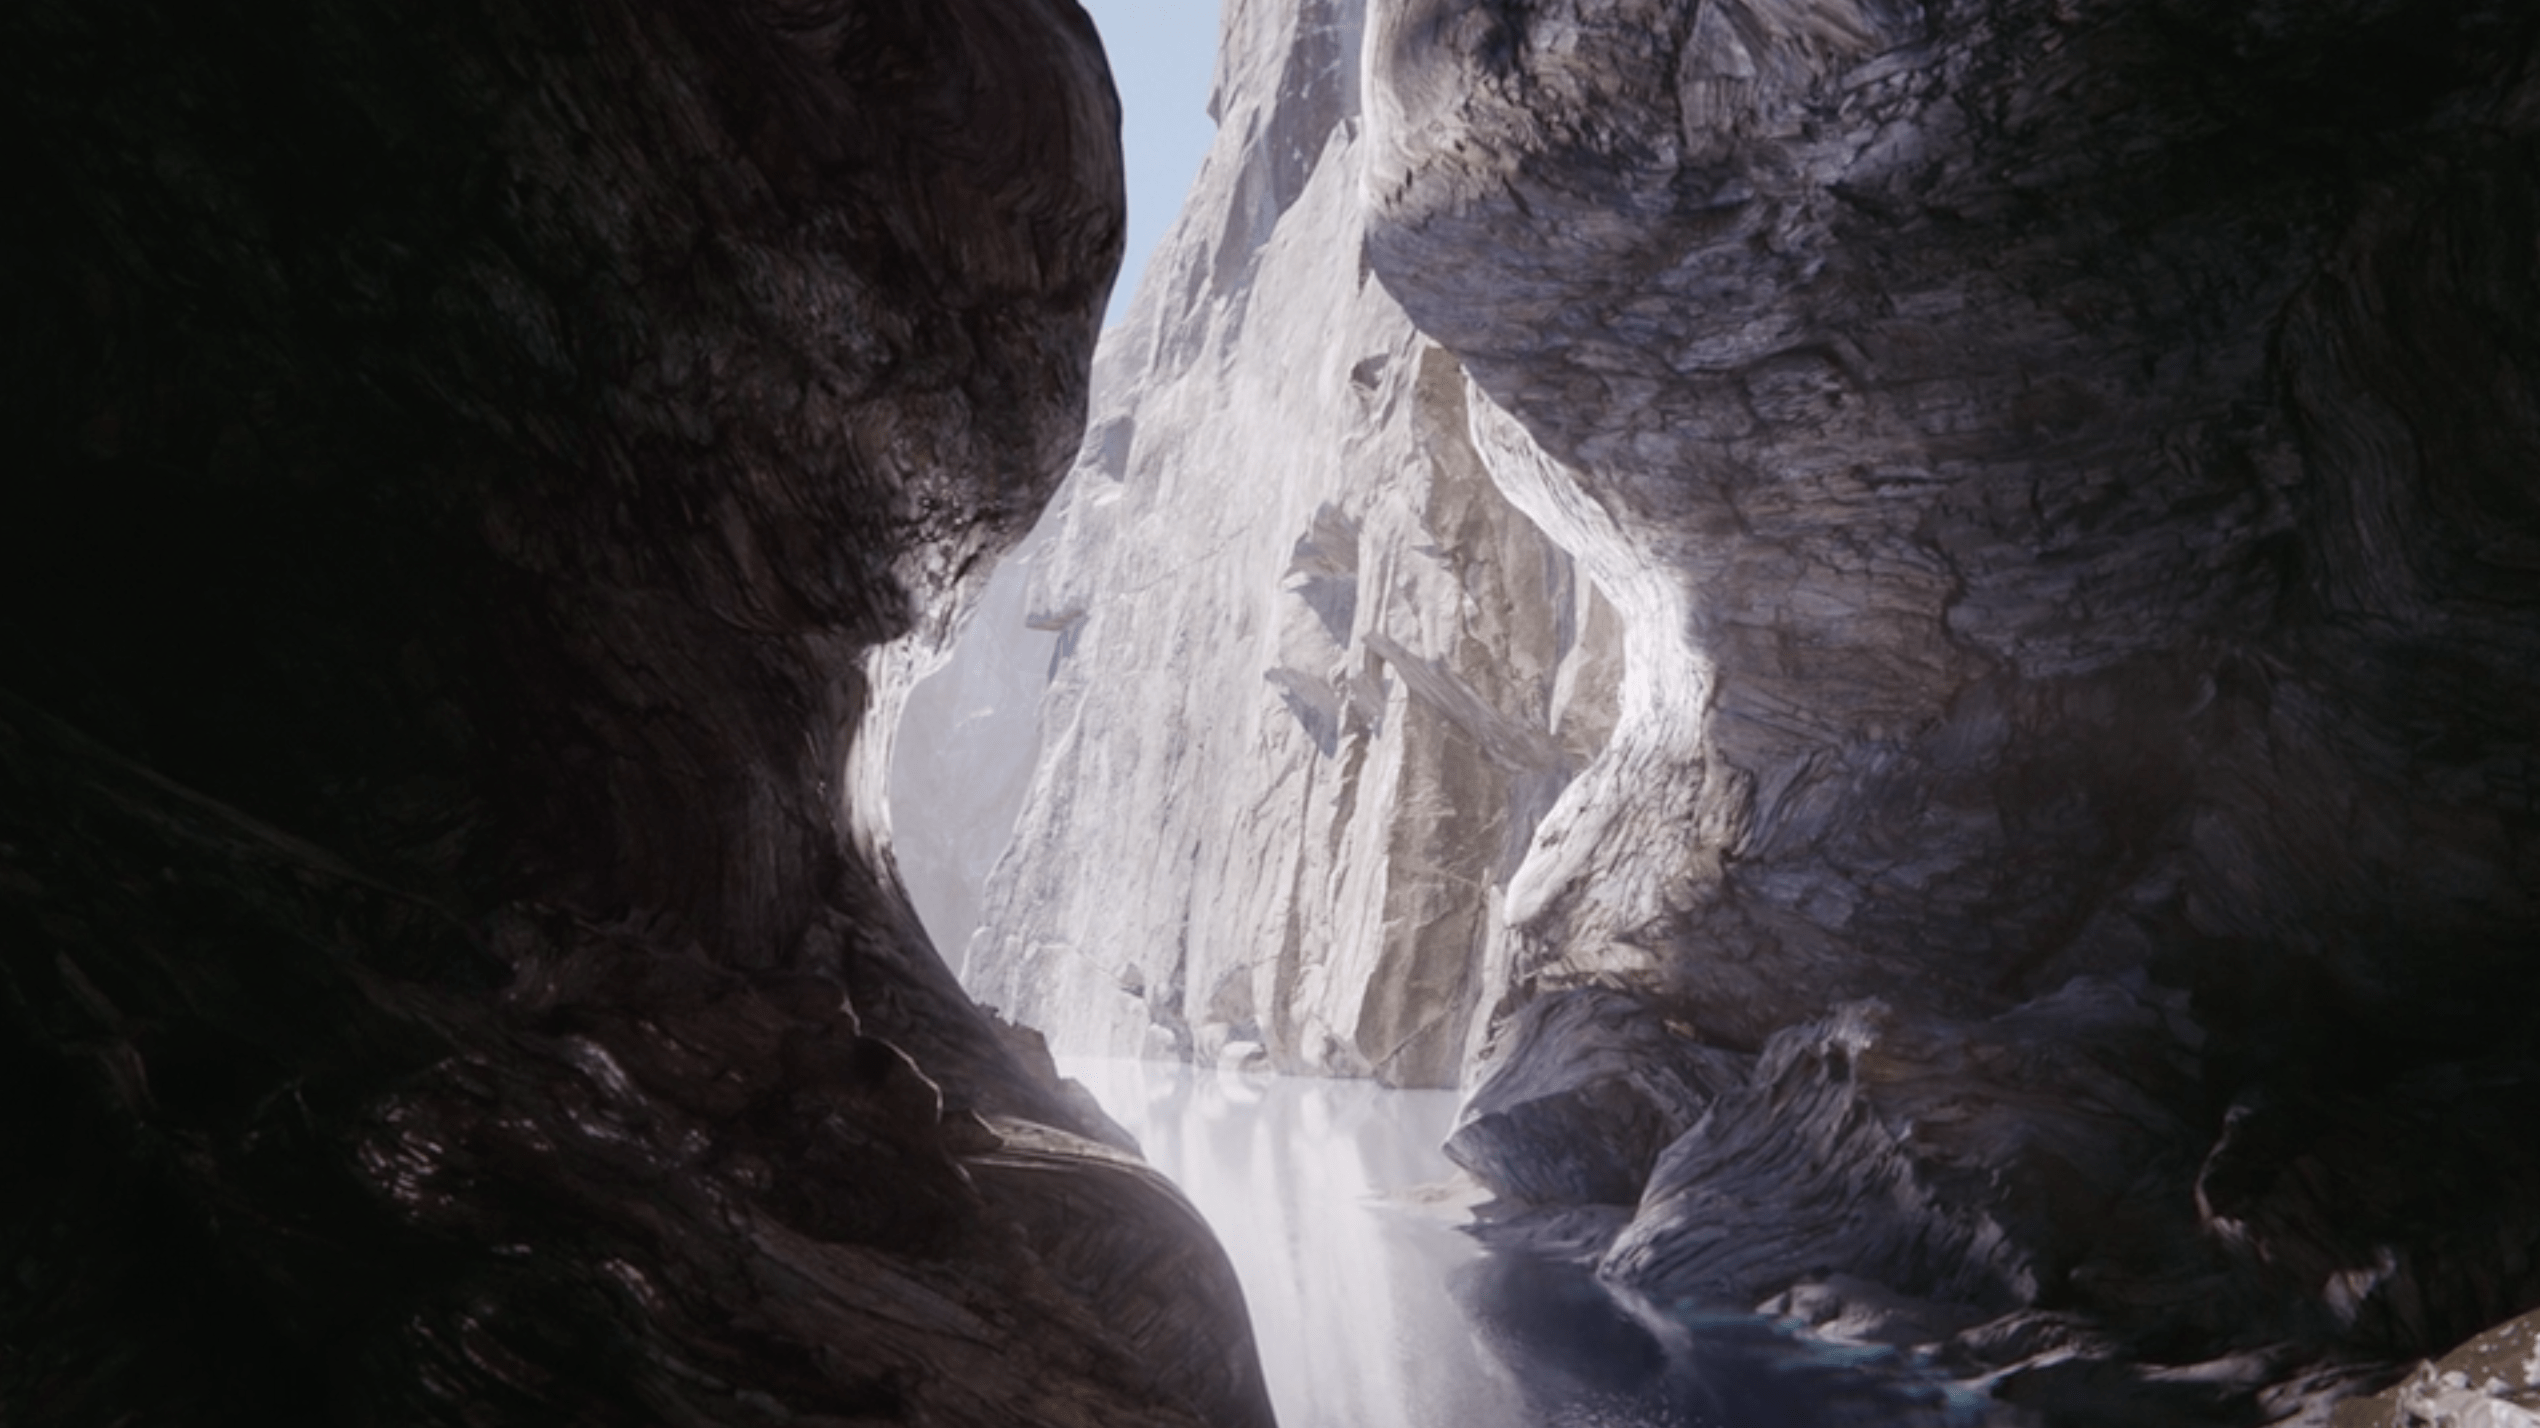 Deep dark gorge illuminating representing honesty and transparency VFX